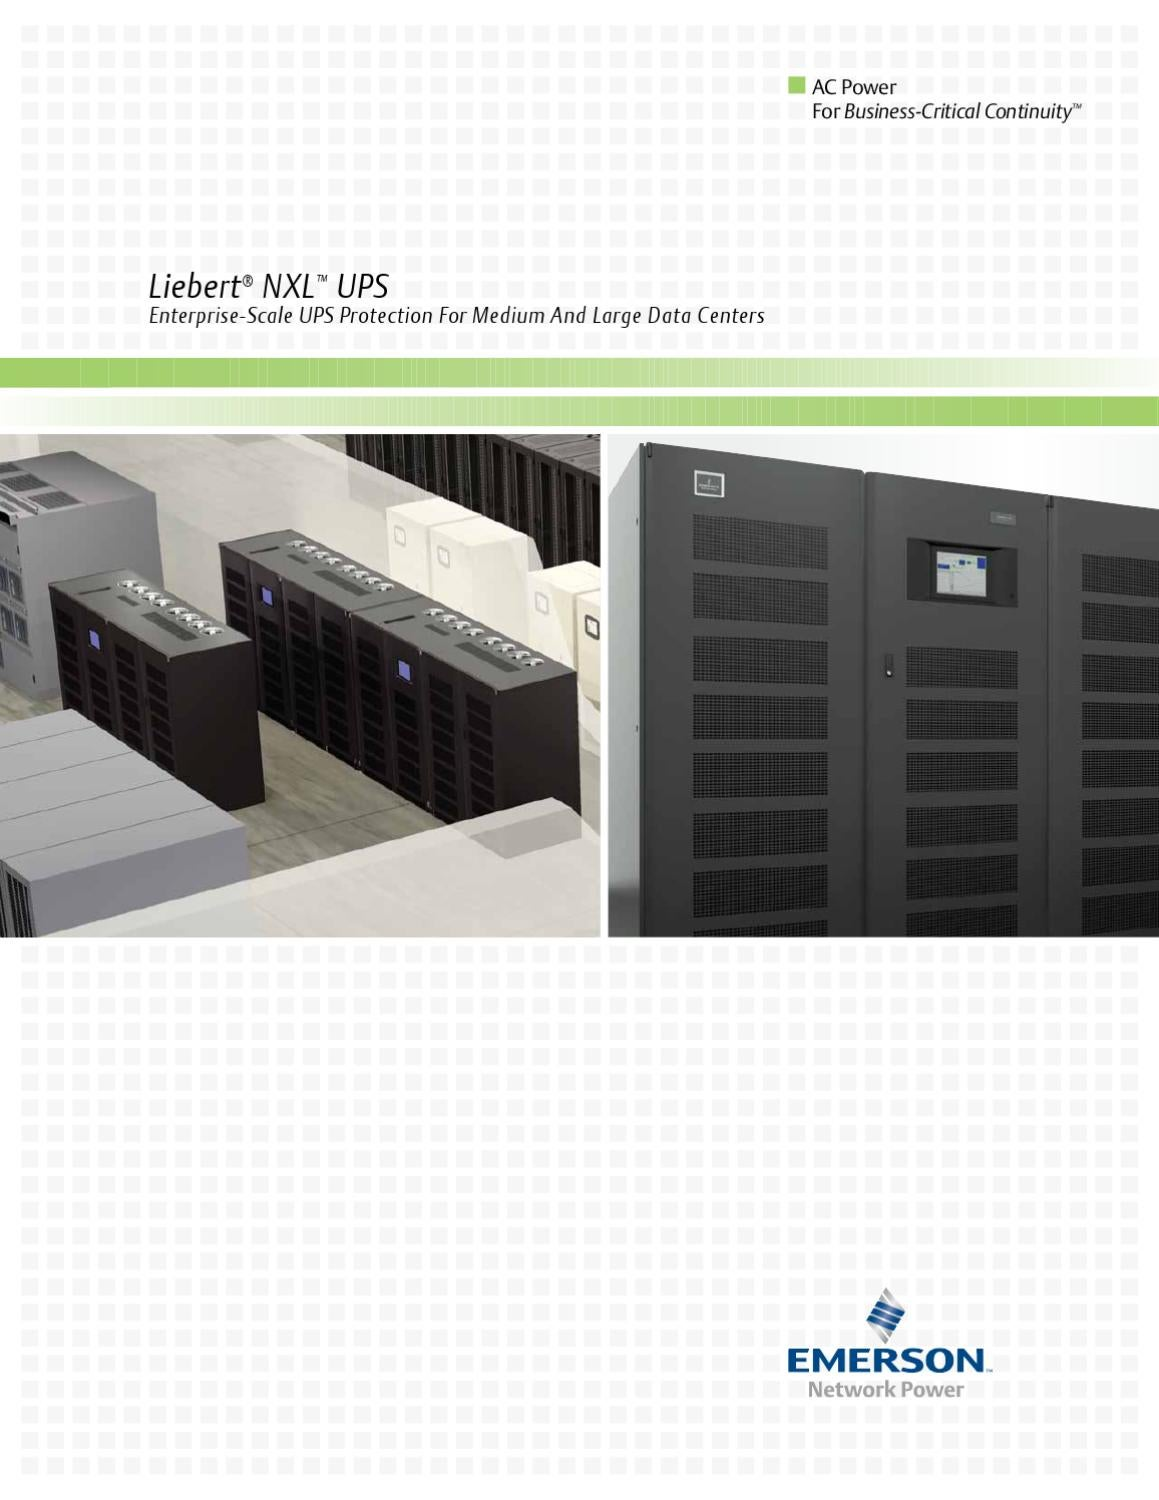 Emerson network power ups manual